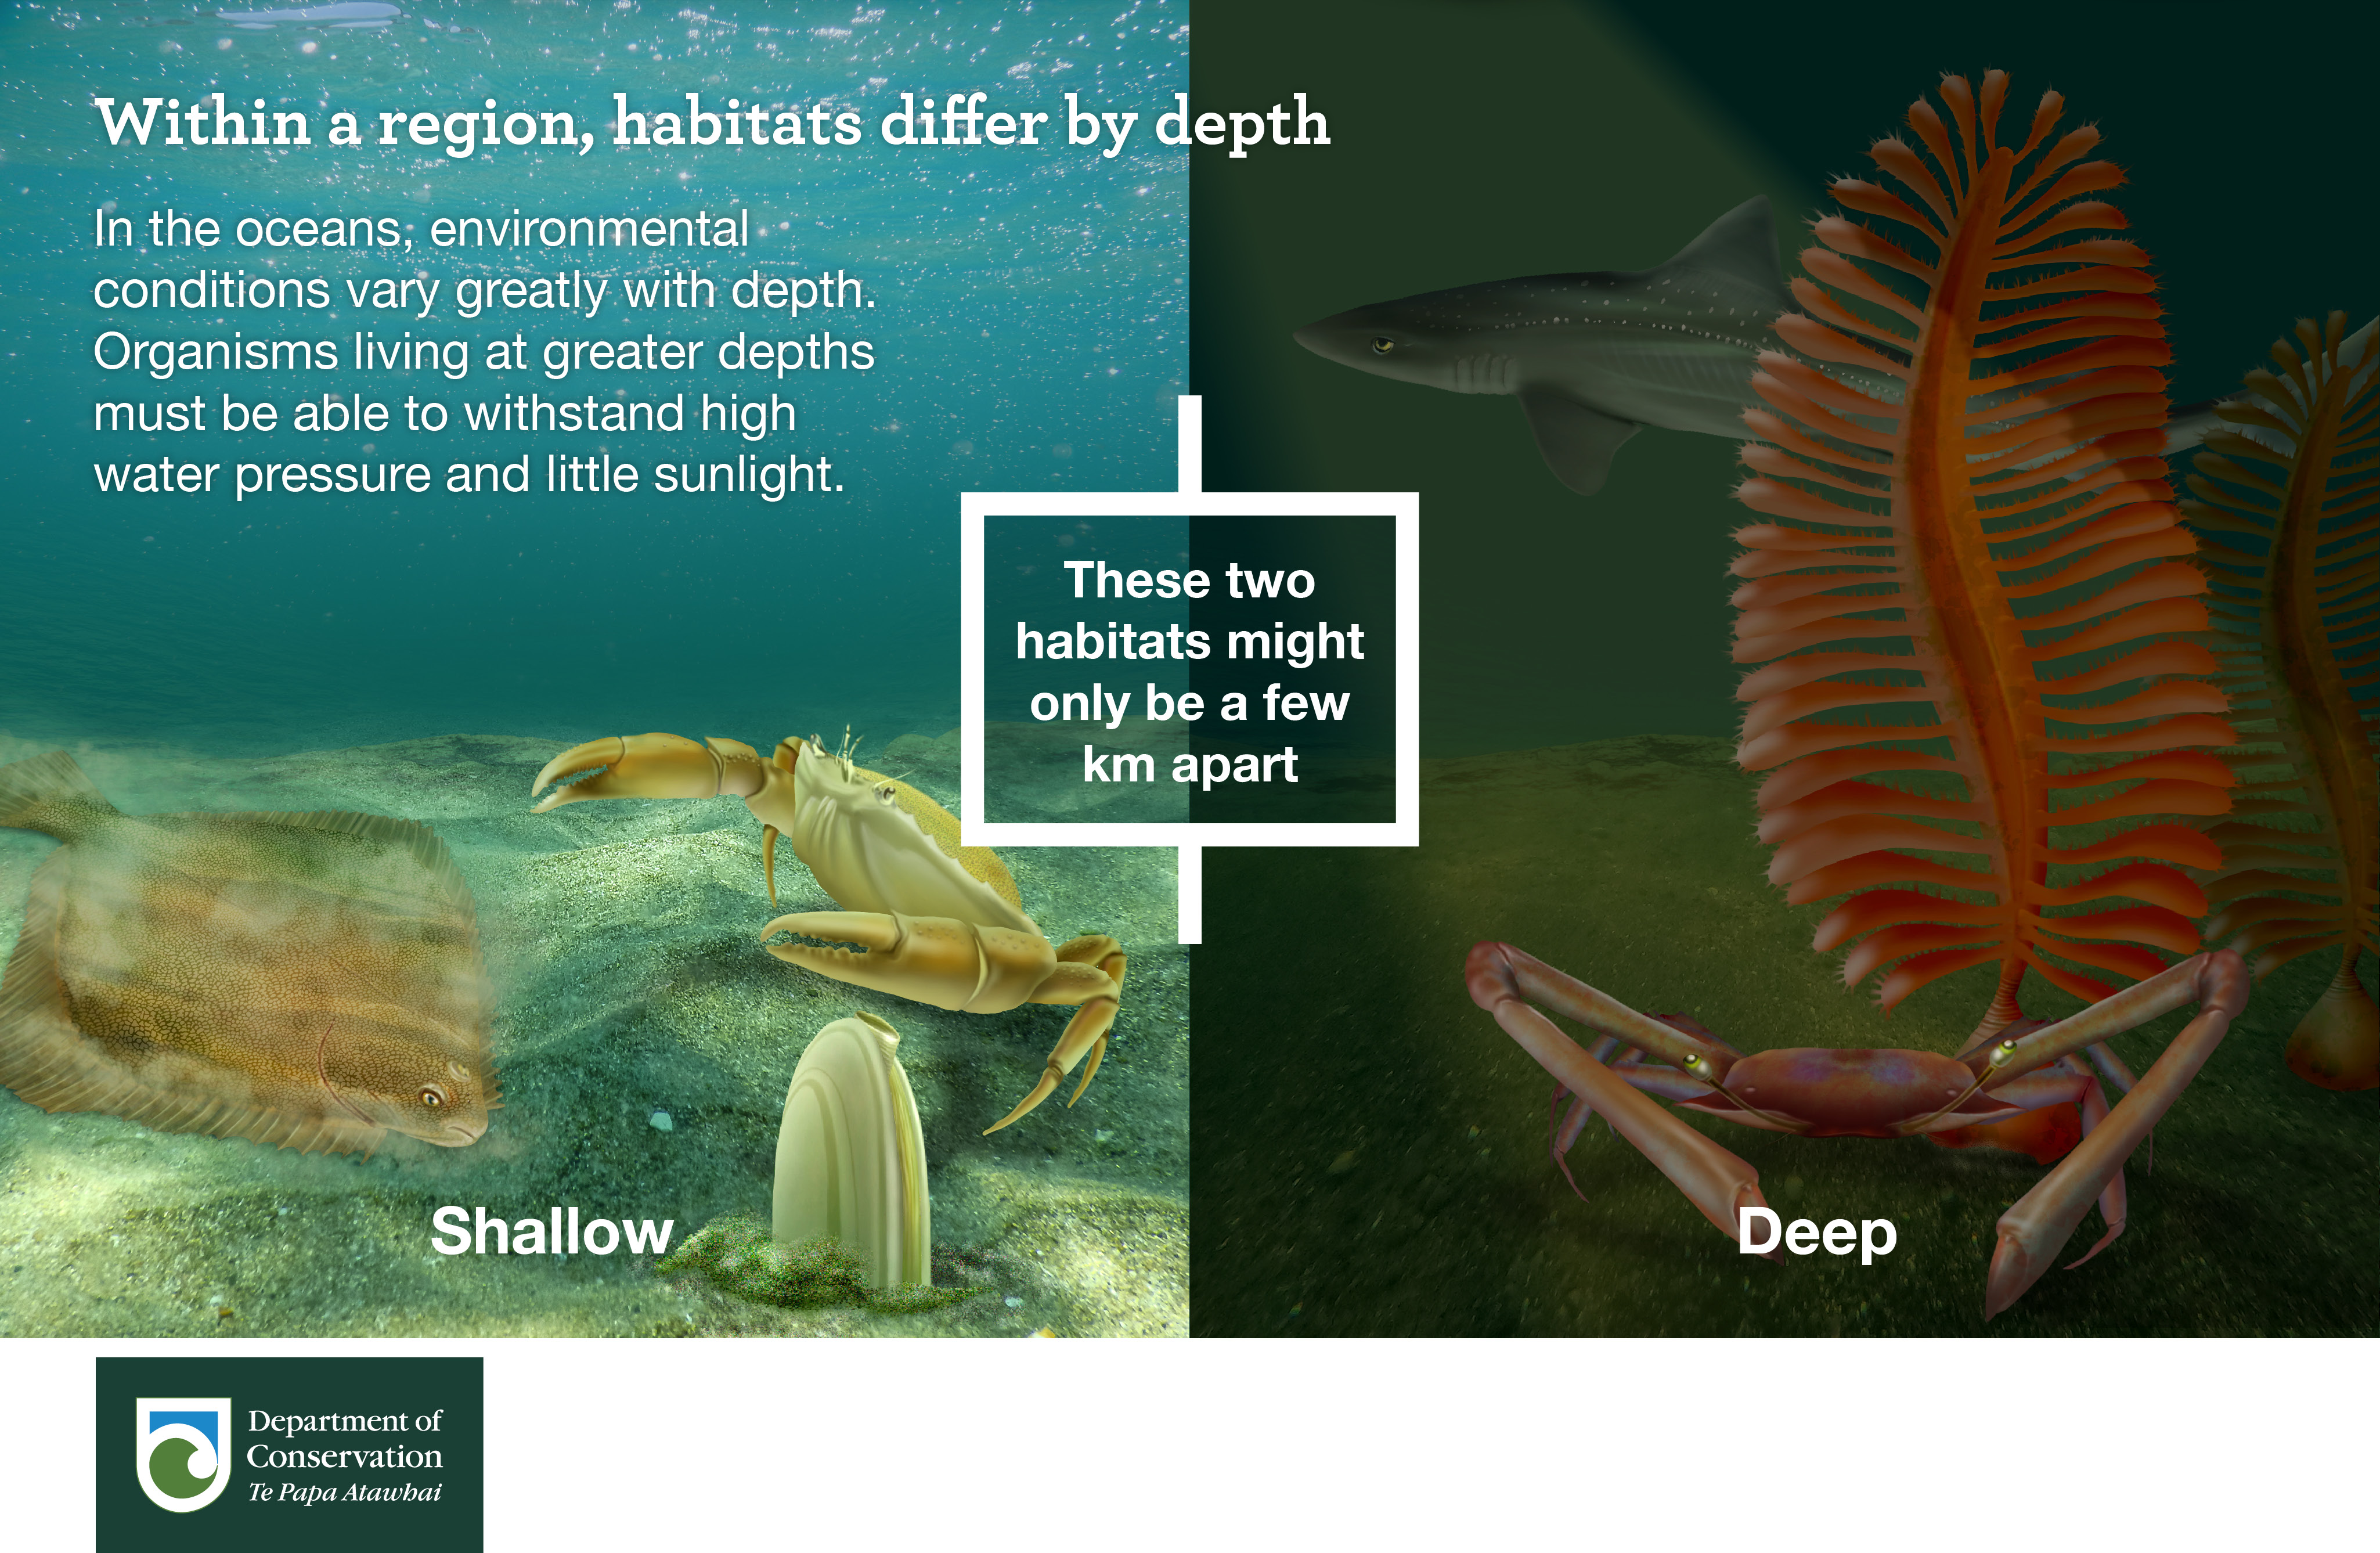 Within a region habitats differ by depth